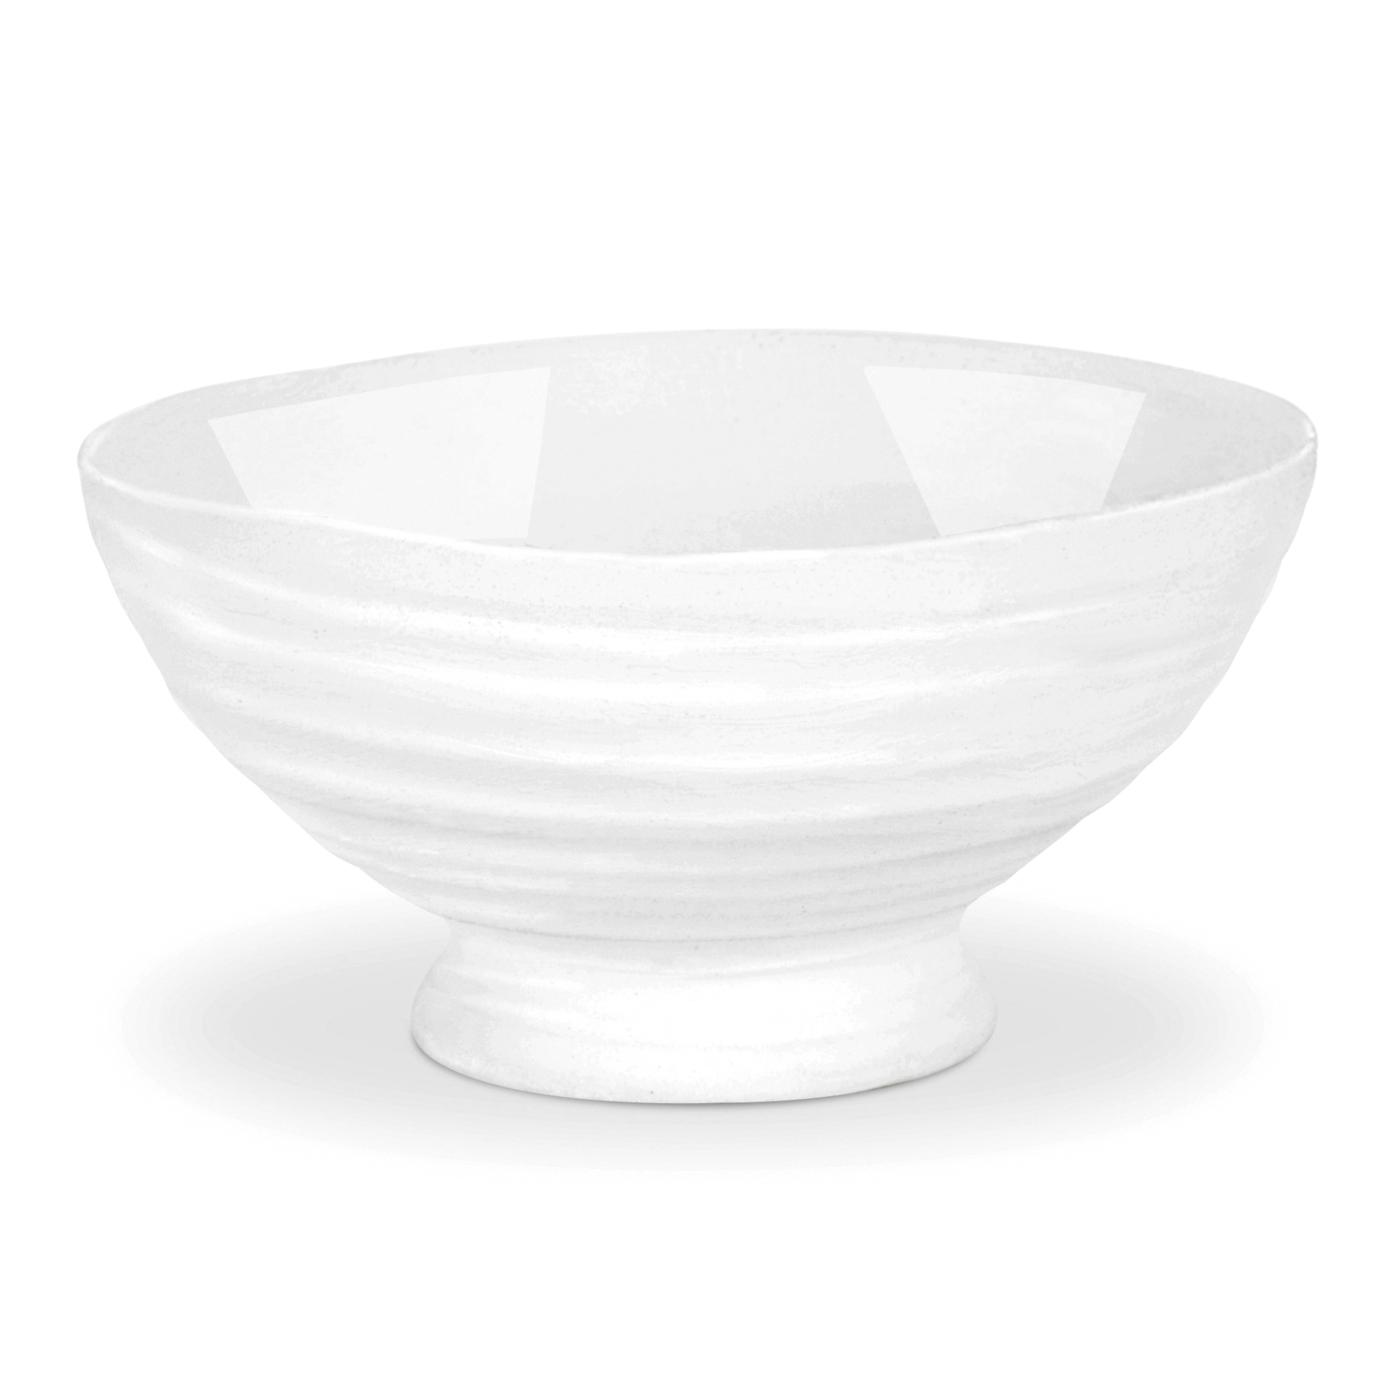 포트메리온 '소피 콘란' 깊은 접시 4개 세트 Portmeirion Sophie Conran White Set of 4 Mini Dip Dishes